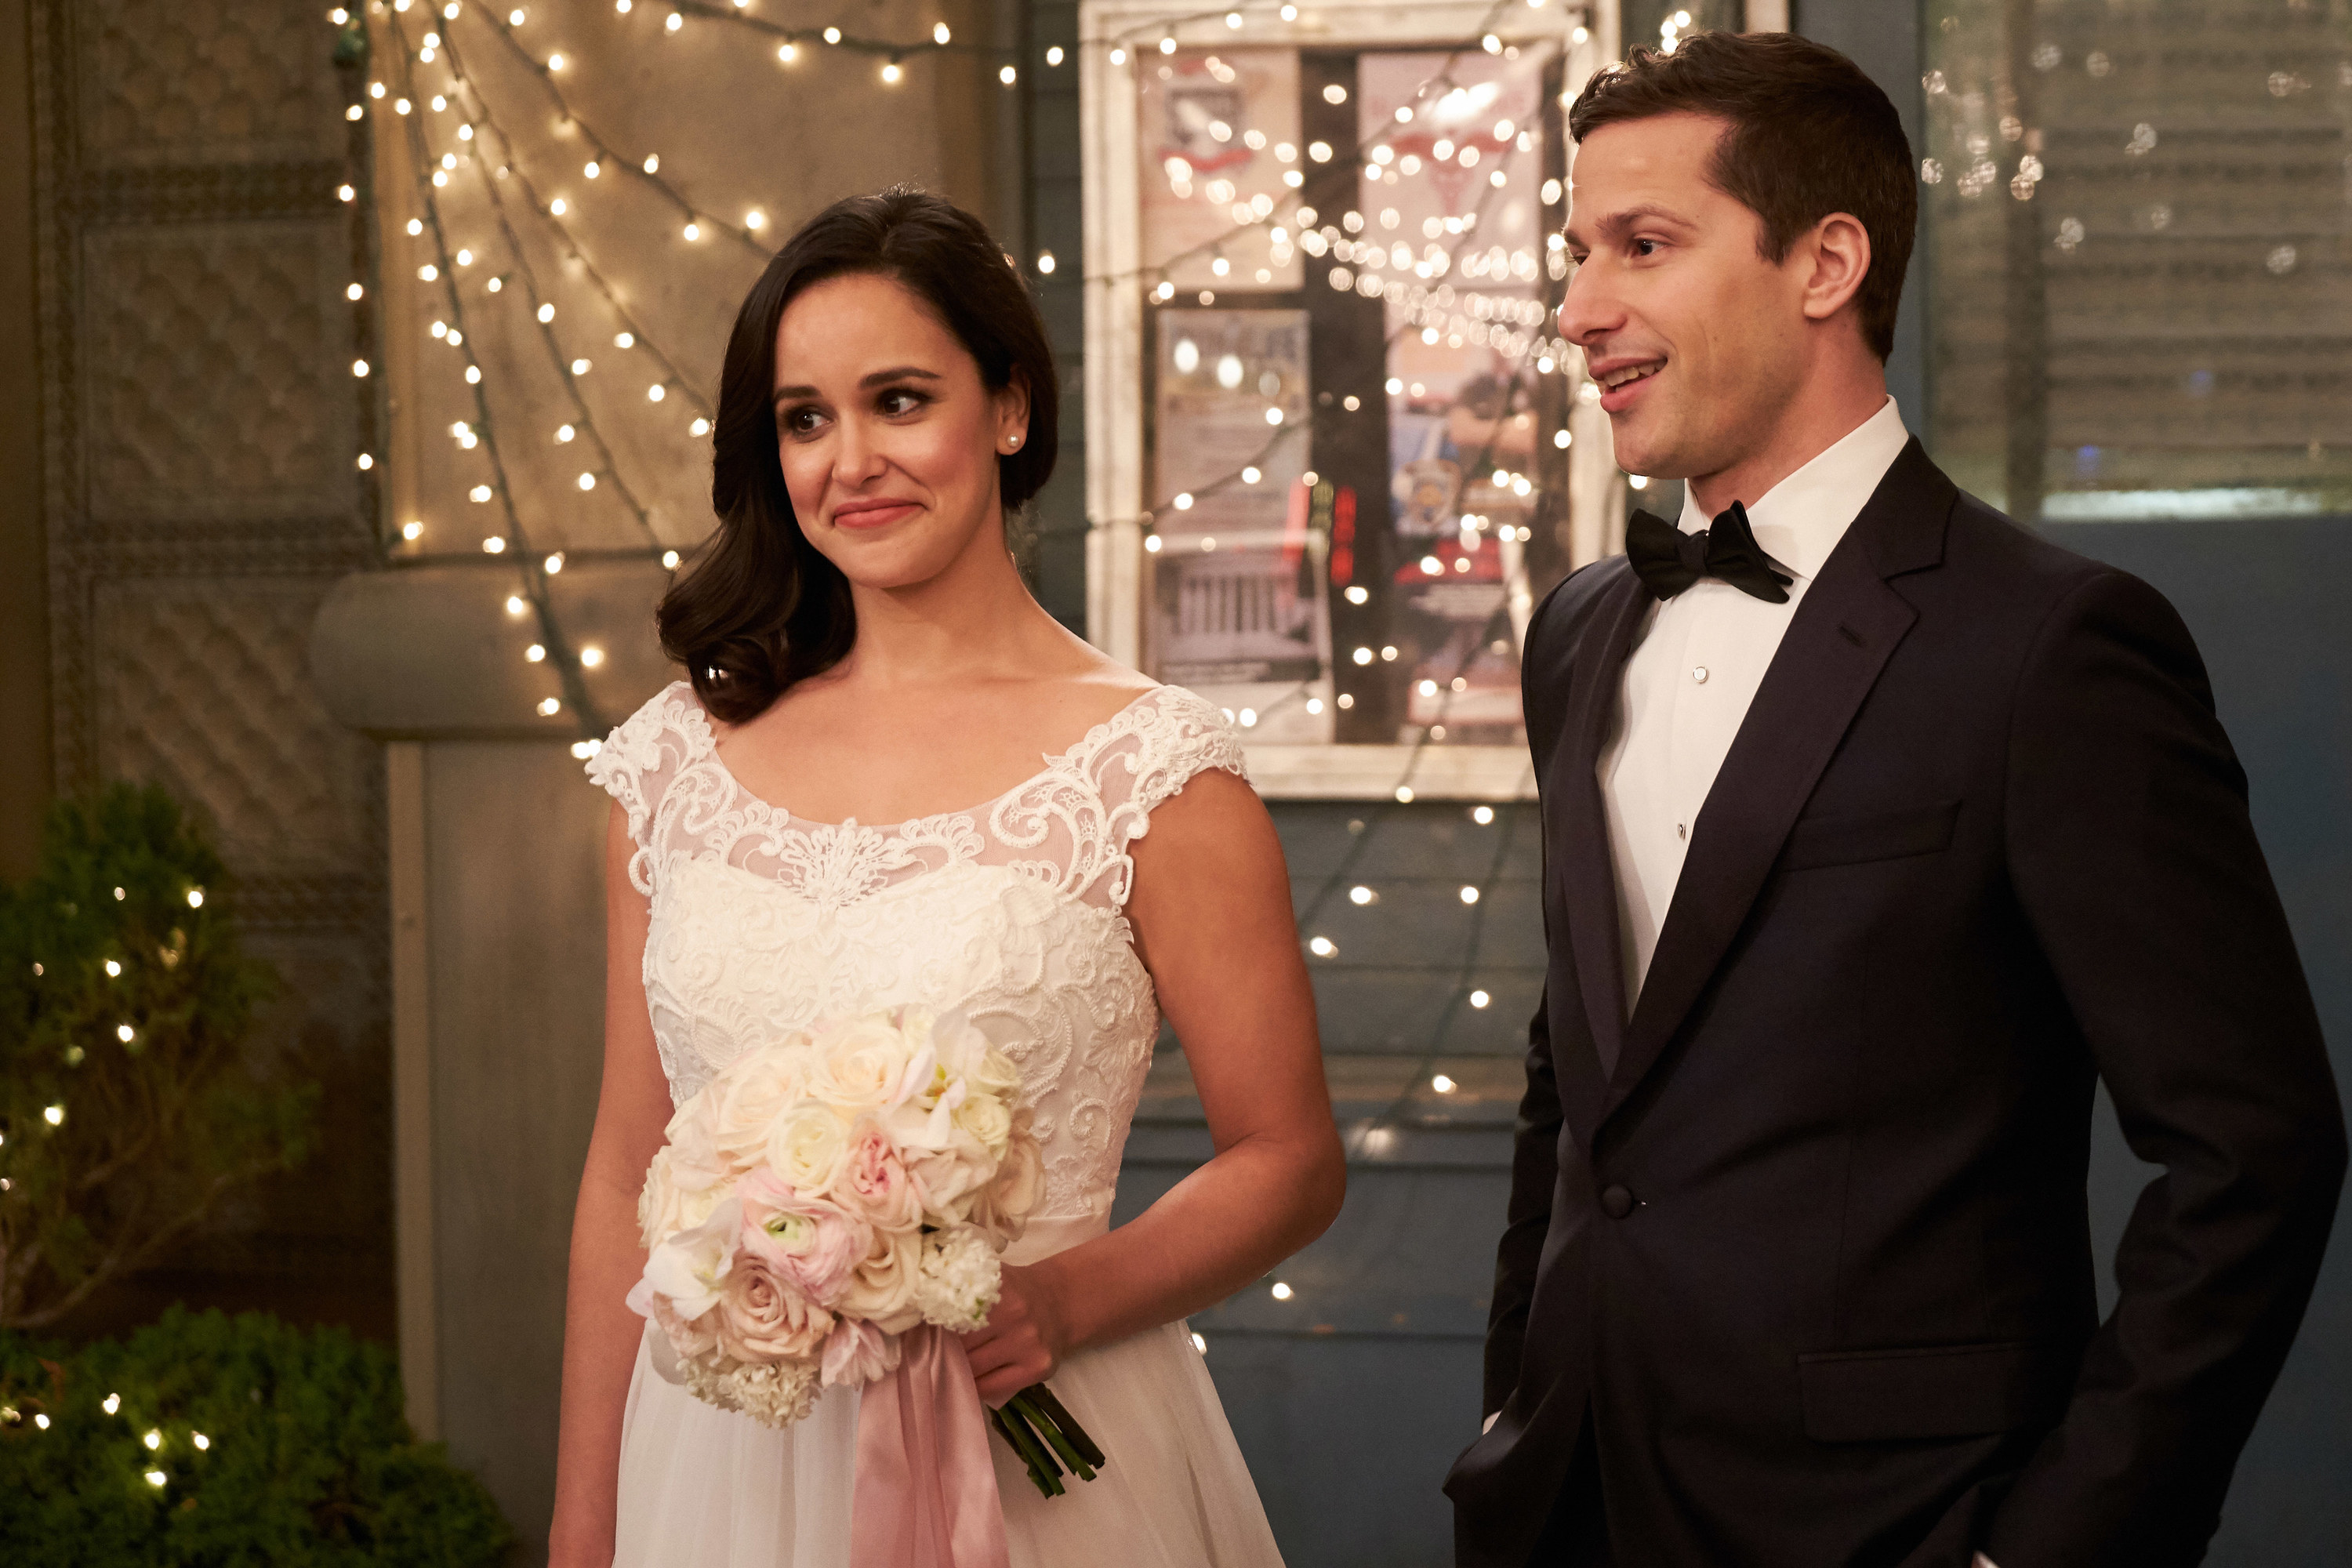 Amy and Jake on their impromptu wedding day